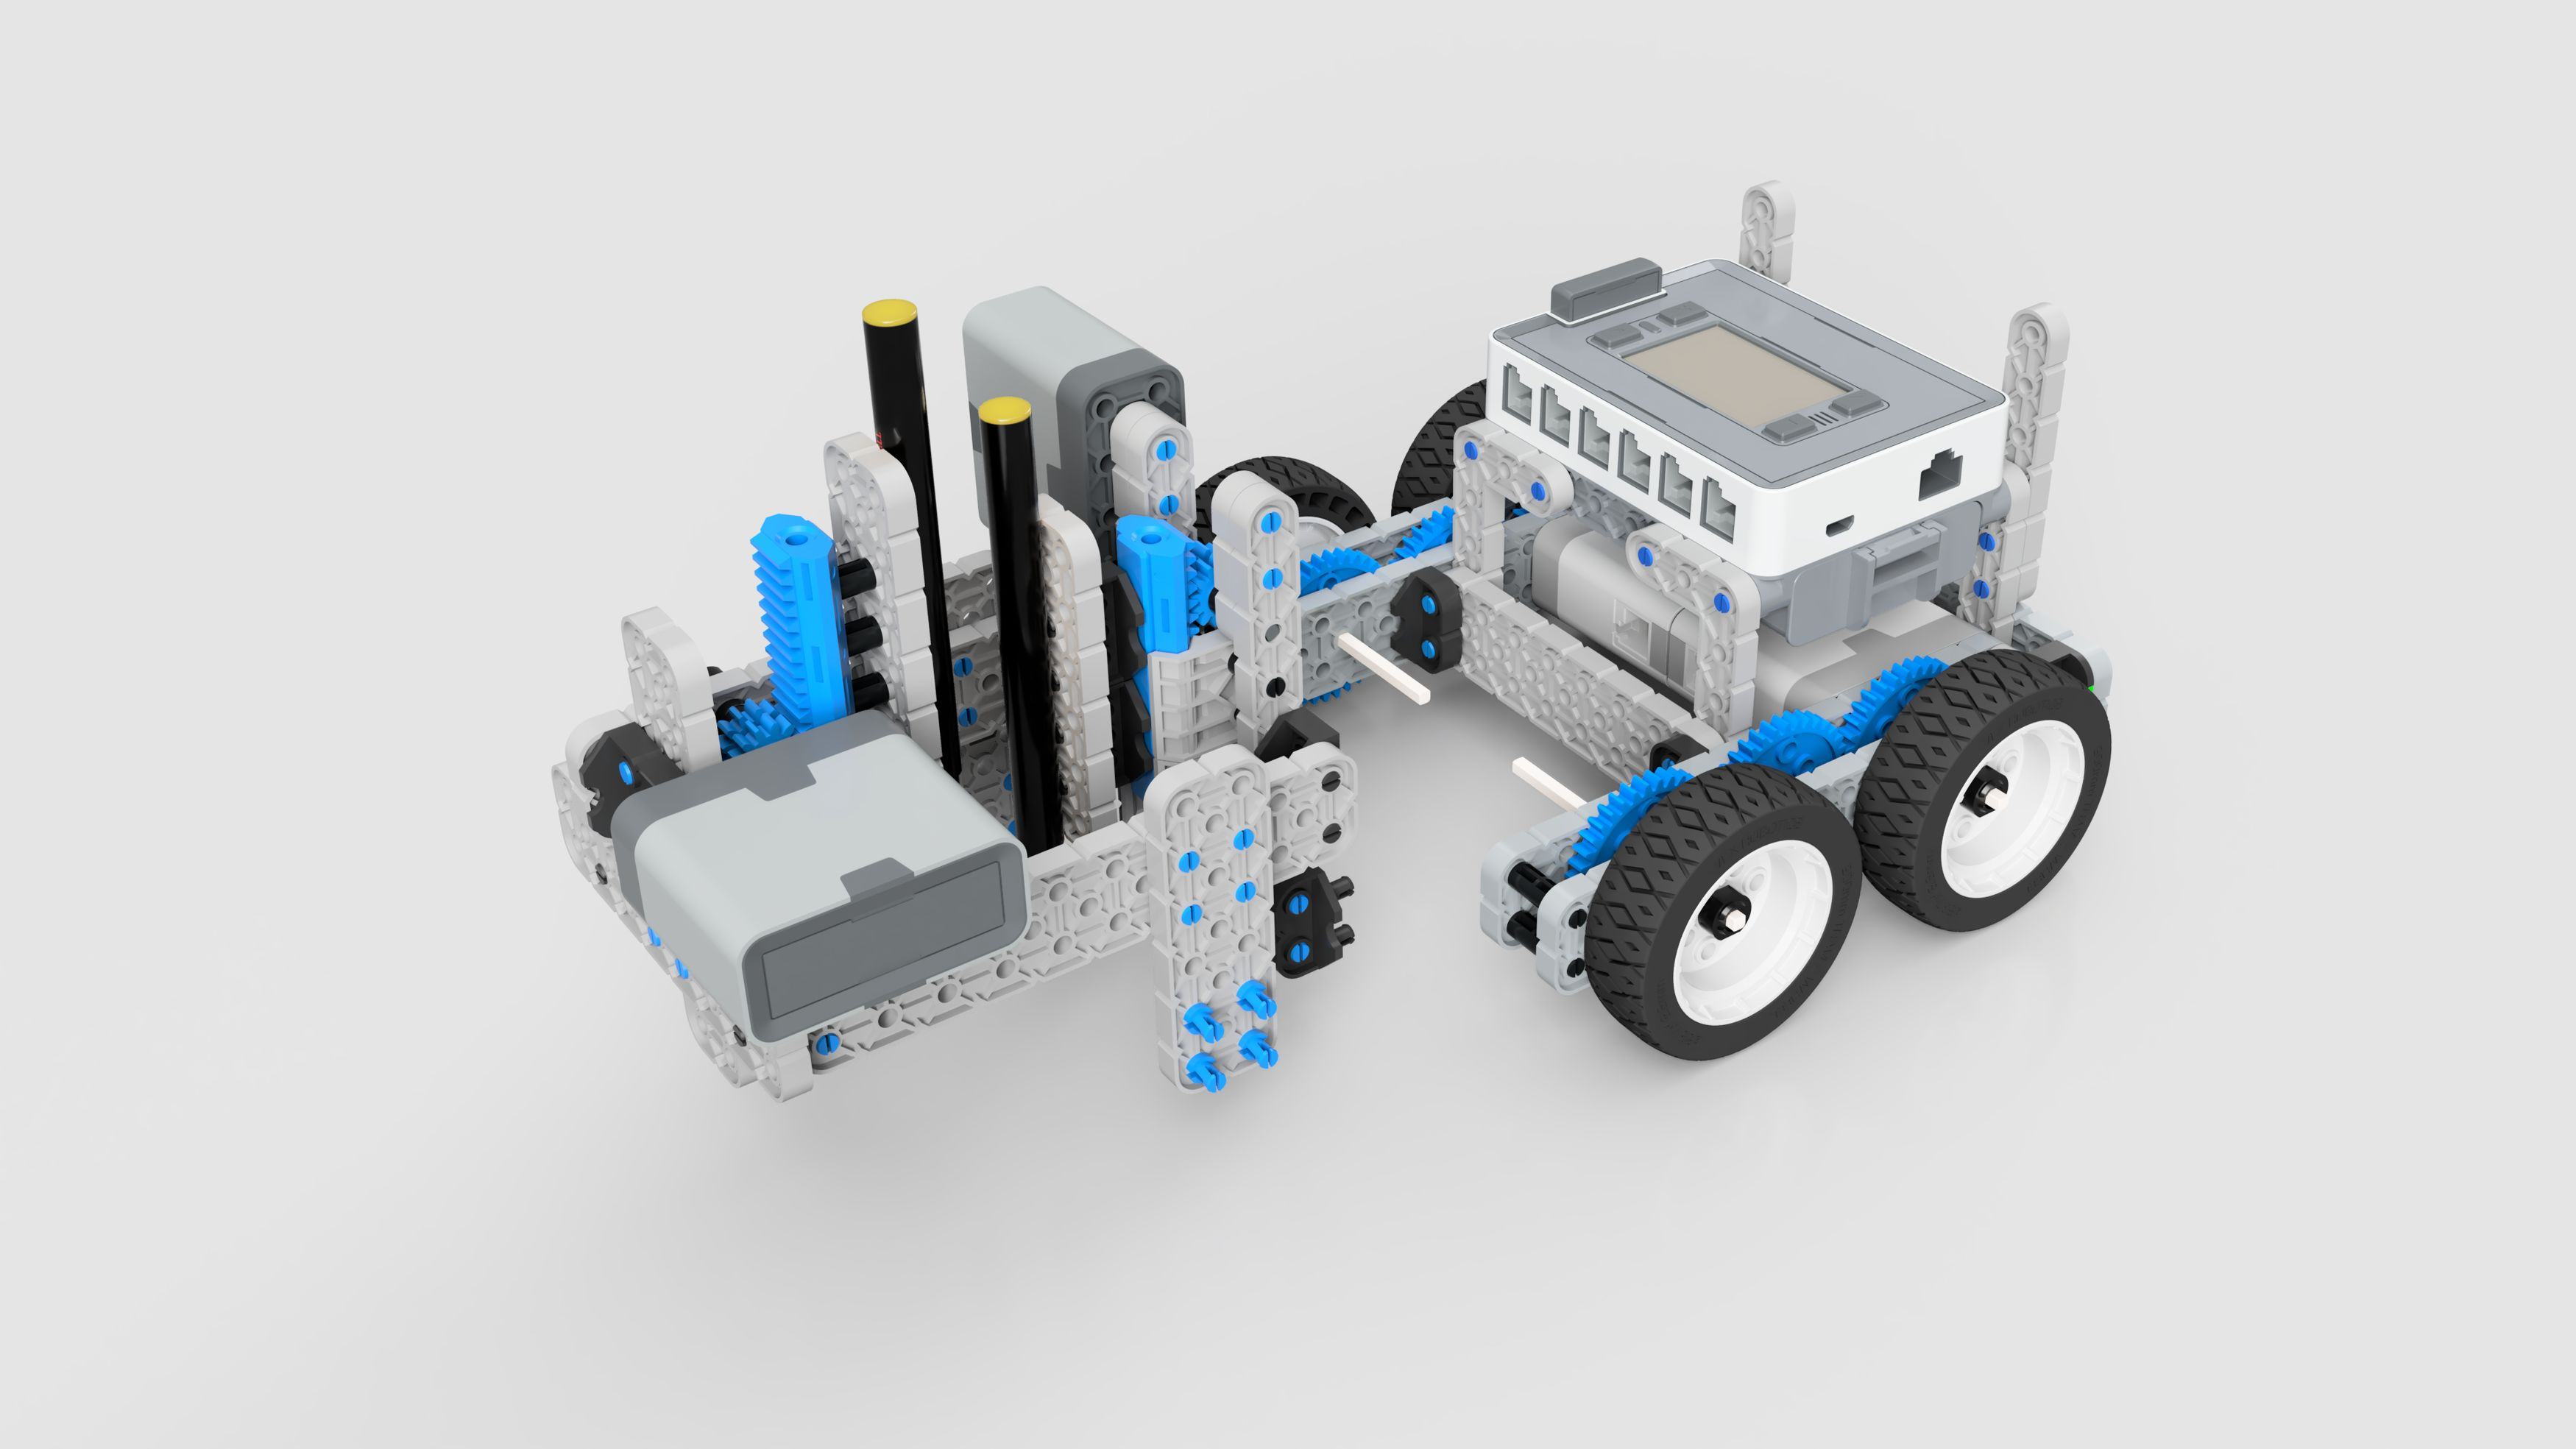 Vex-iq-robot-caneta-2020-may-24-04-58-06pm-000-customizedview8903624207-png-3500-3500